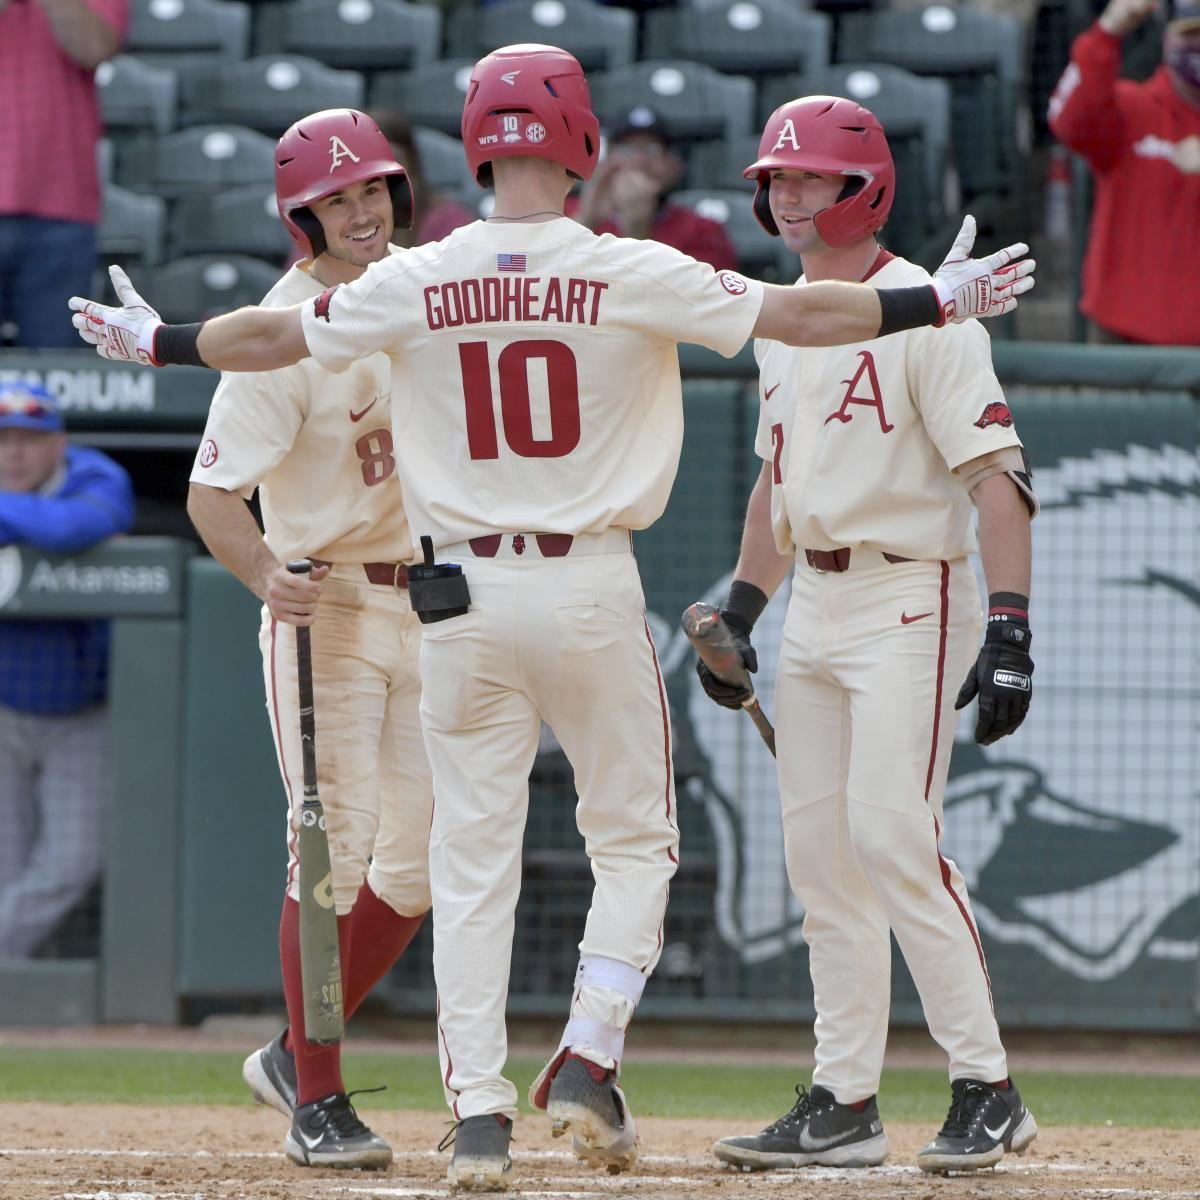 NCAA Baseball Rankings 2021: Latest Top 25 D1 RPI, Team Records and Standings